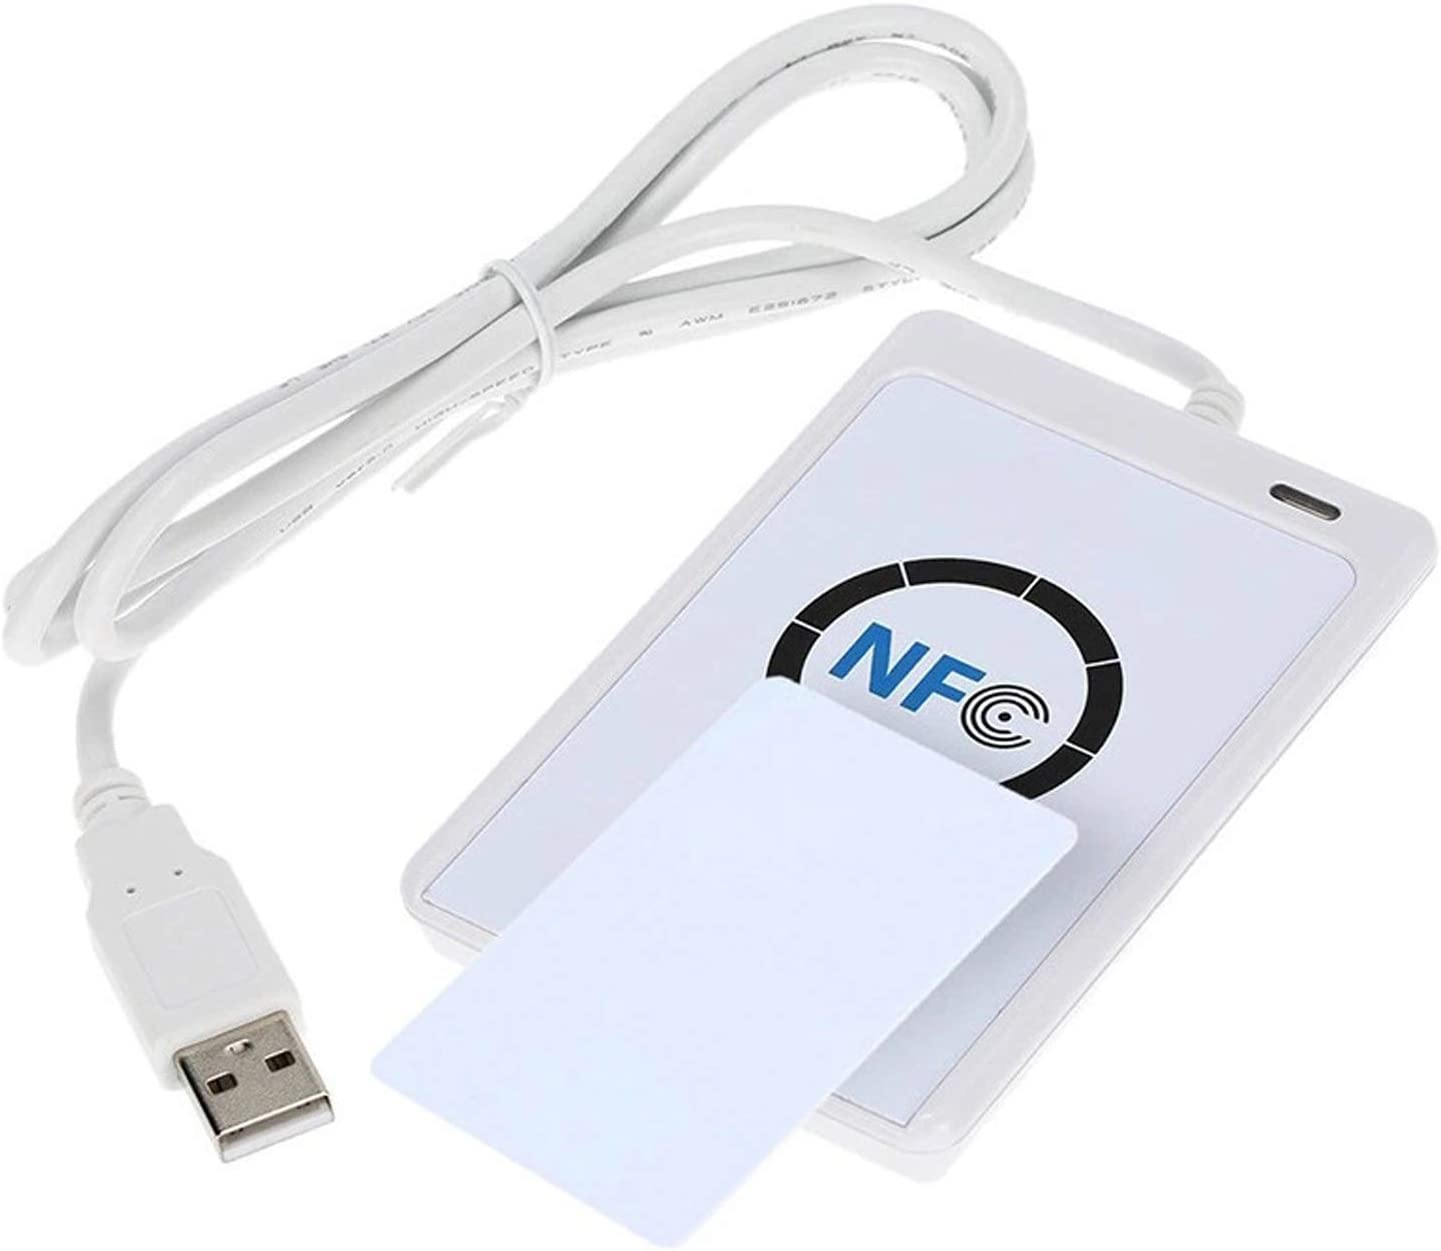 Loijon NFC RFID Intelligent Card Reader Writer Copier Duplicator Writable Clone Software USB S50 13.56MHz Contactless Read and Write Device